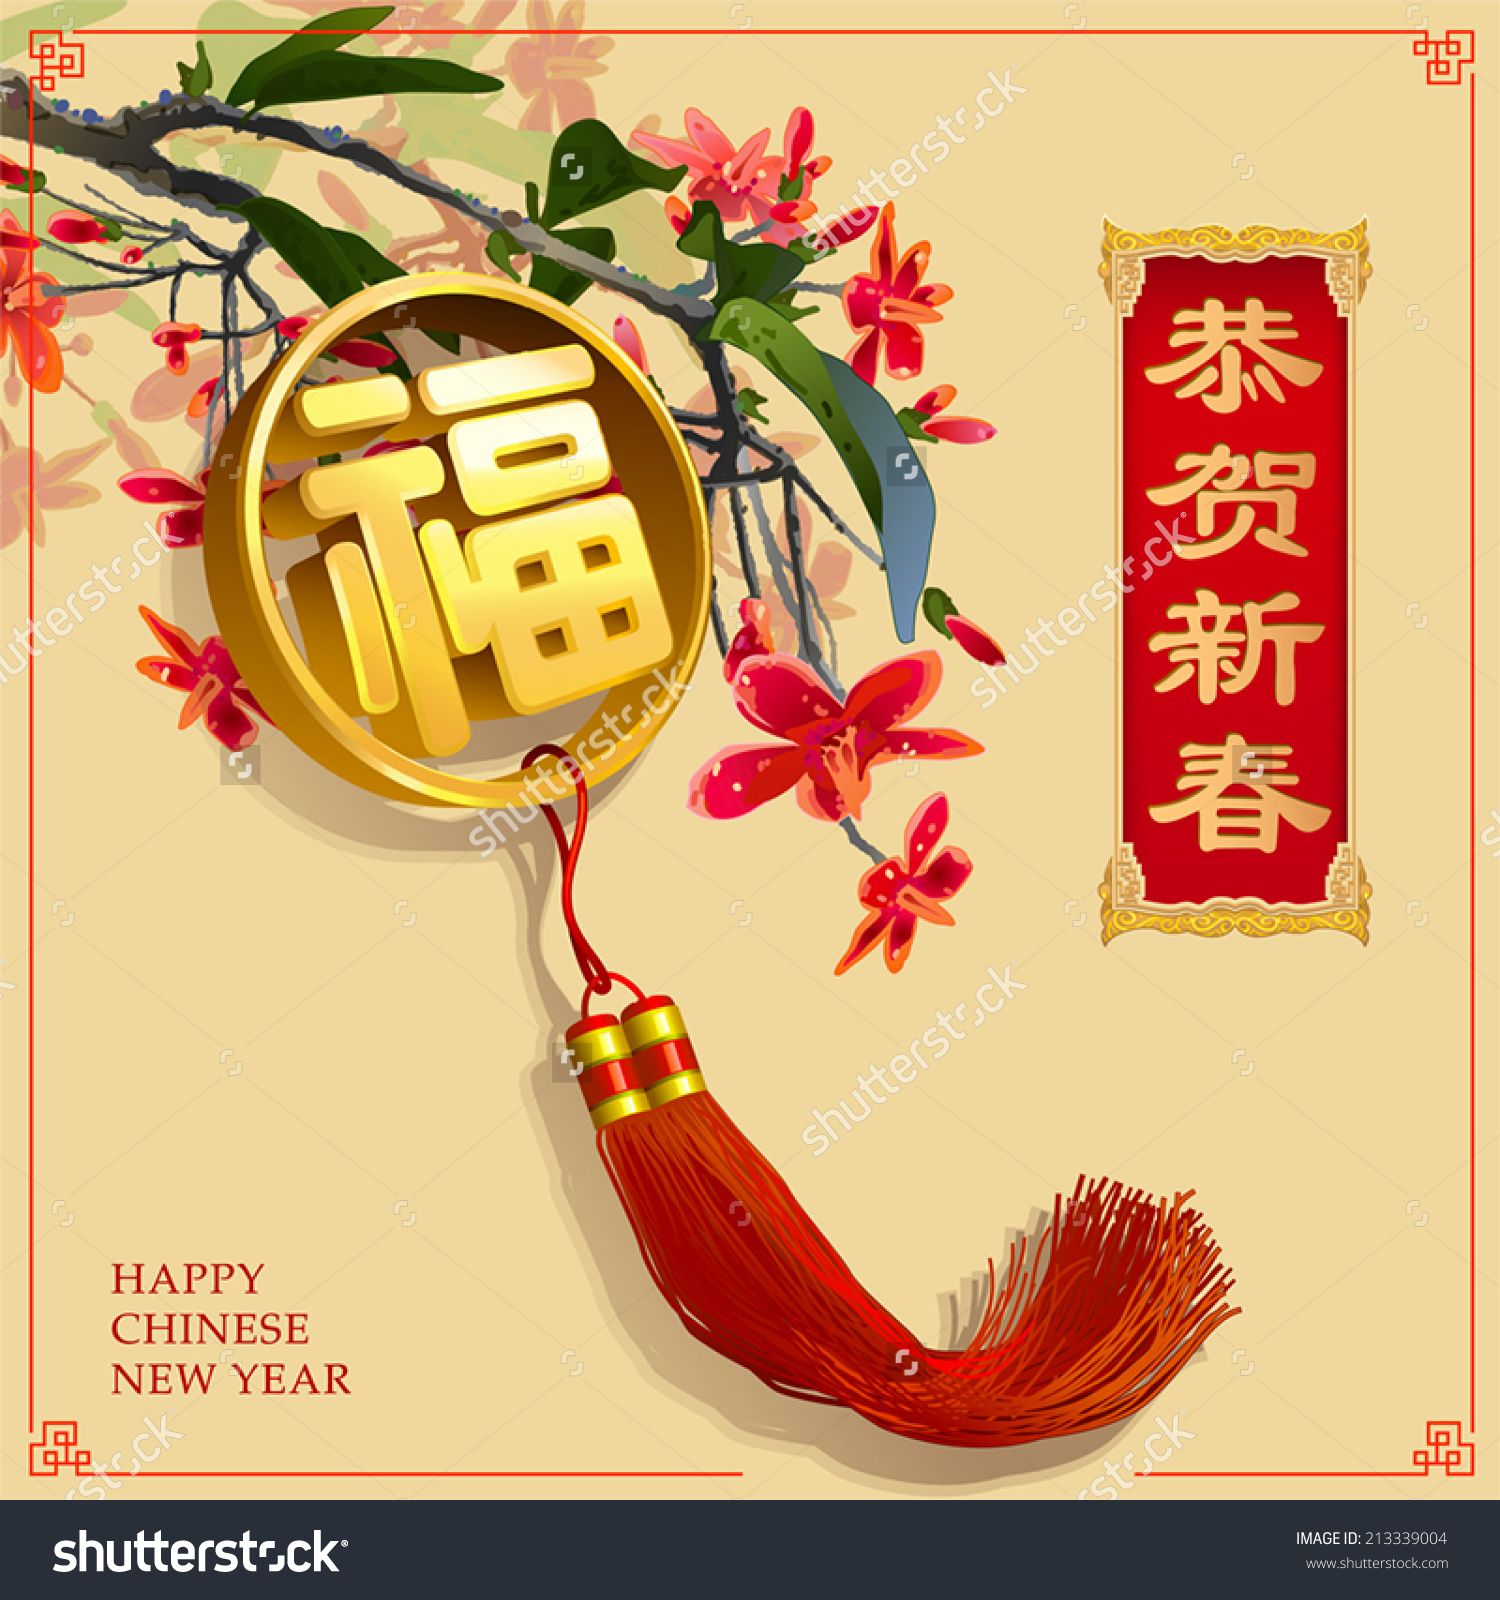 Retro happy new year japan google search thit k bao b vintage chinese flower painting with greeting chinese character gong he xin chun happy new year buy this stock vector on shutterstock find other kristyandbryce Choice Image